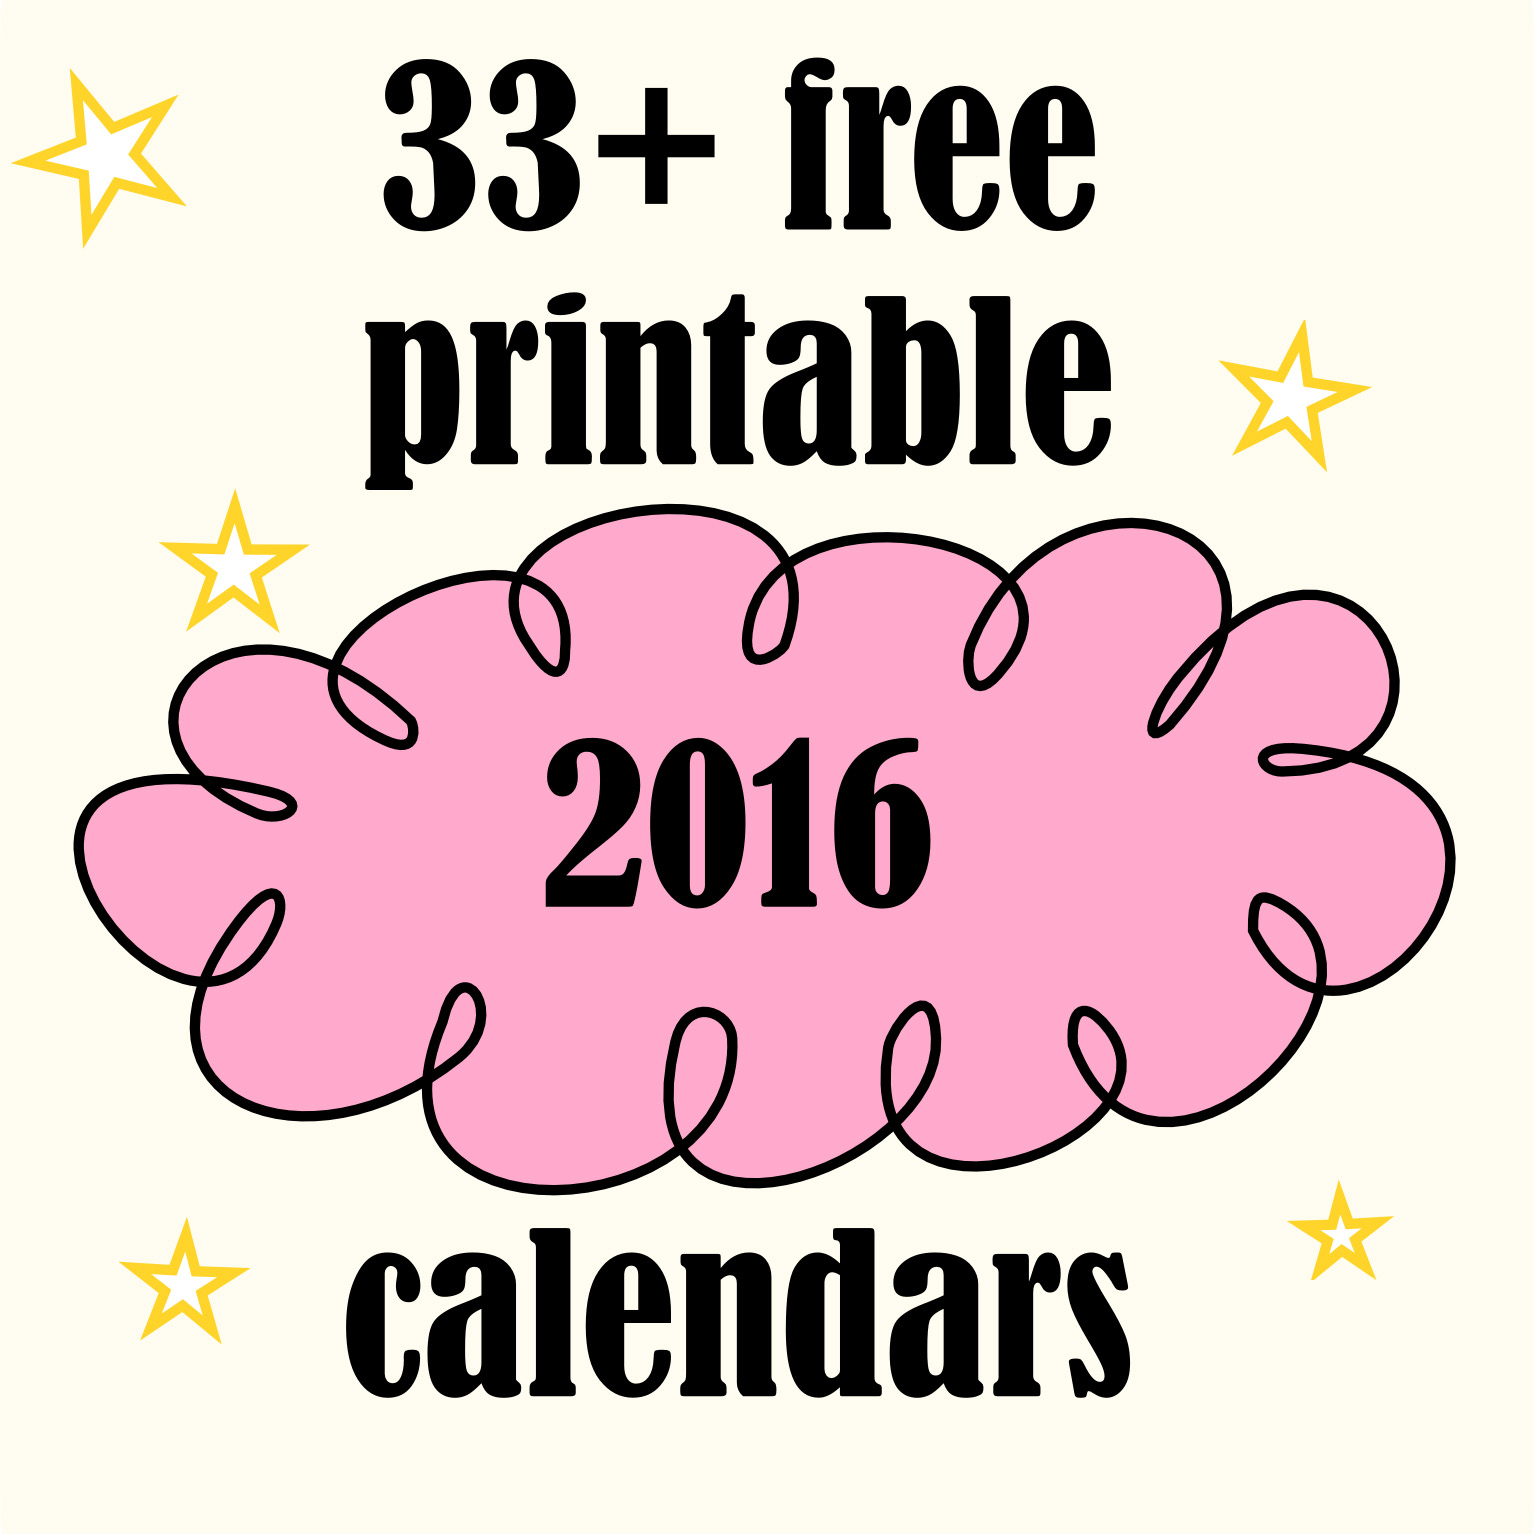 Over 33 free printable 2016 calendars - Kalender 2016 - freebie round ...